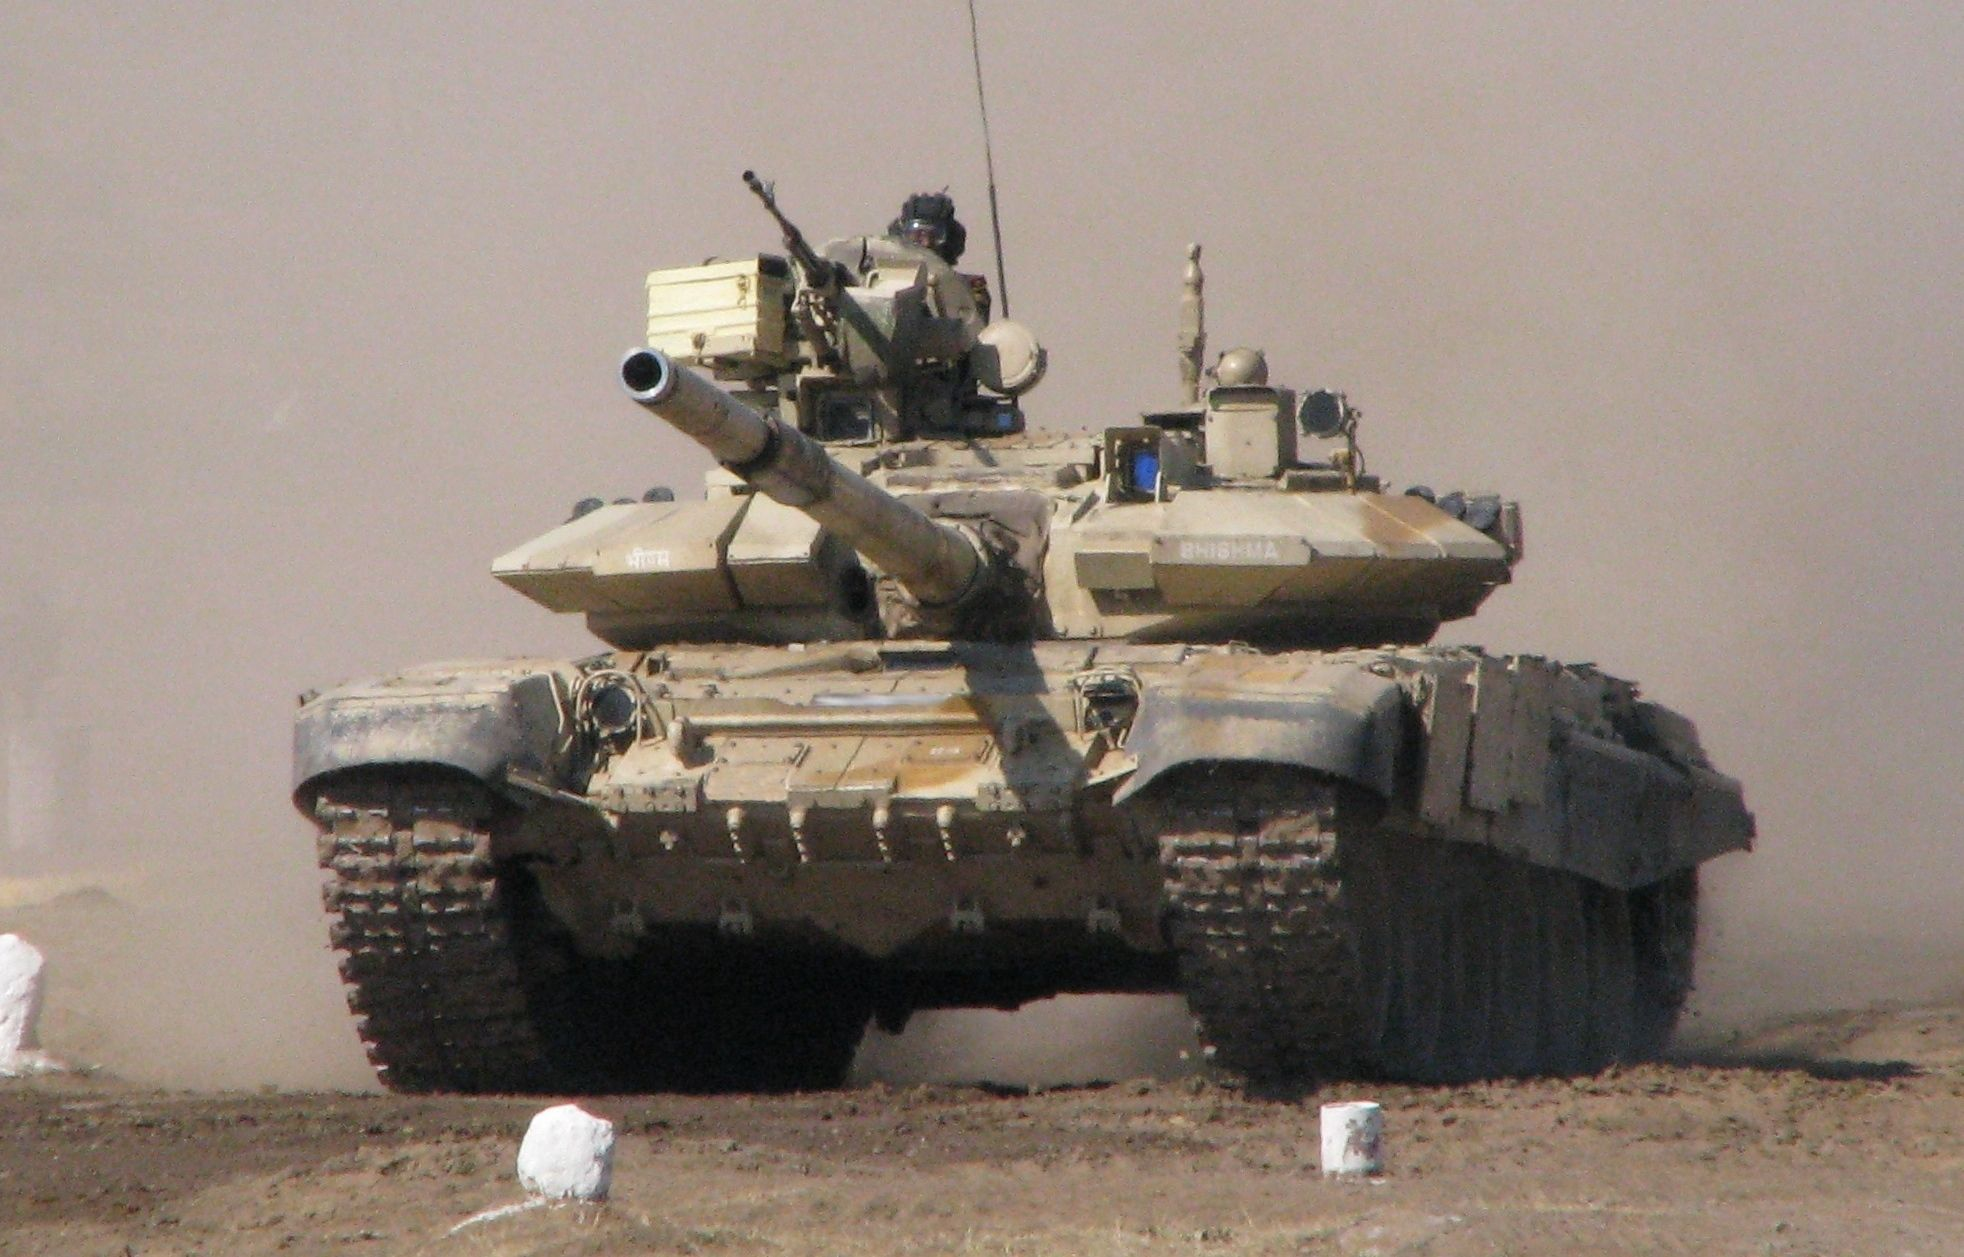 Bmp t 15 armata_russia vehicles of the military kind pinterest russia